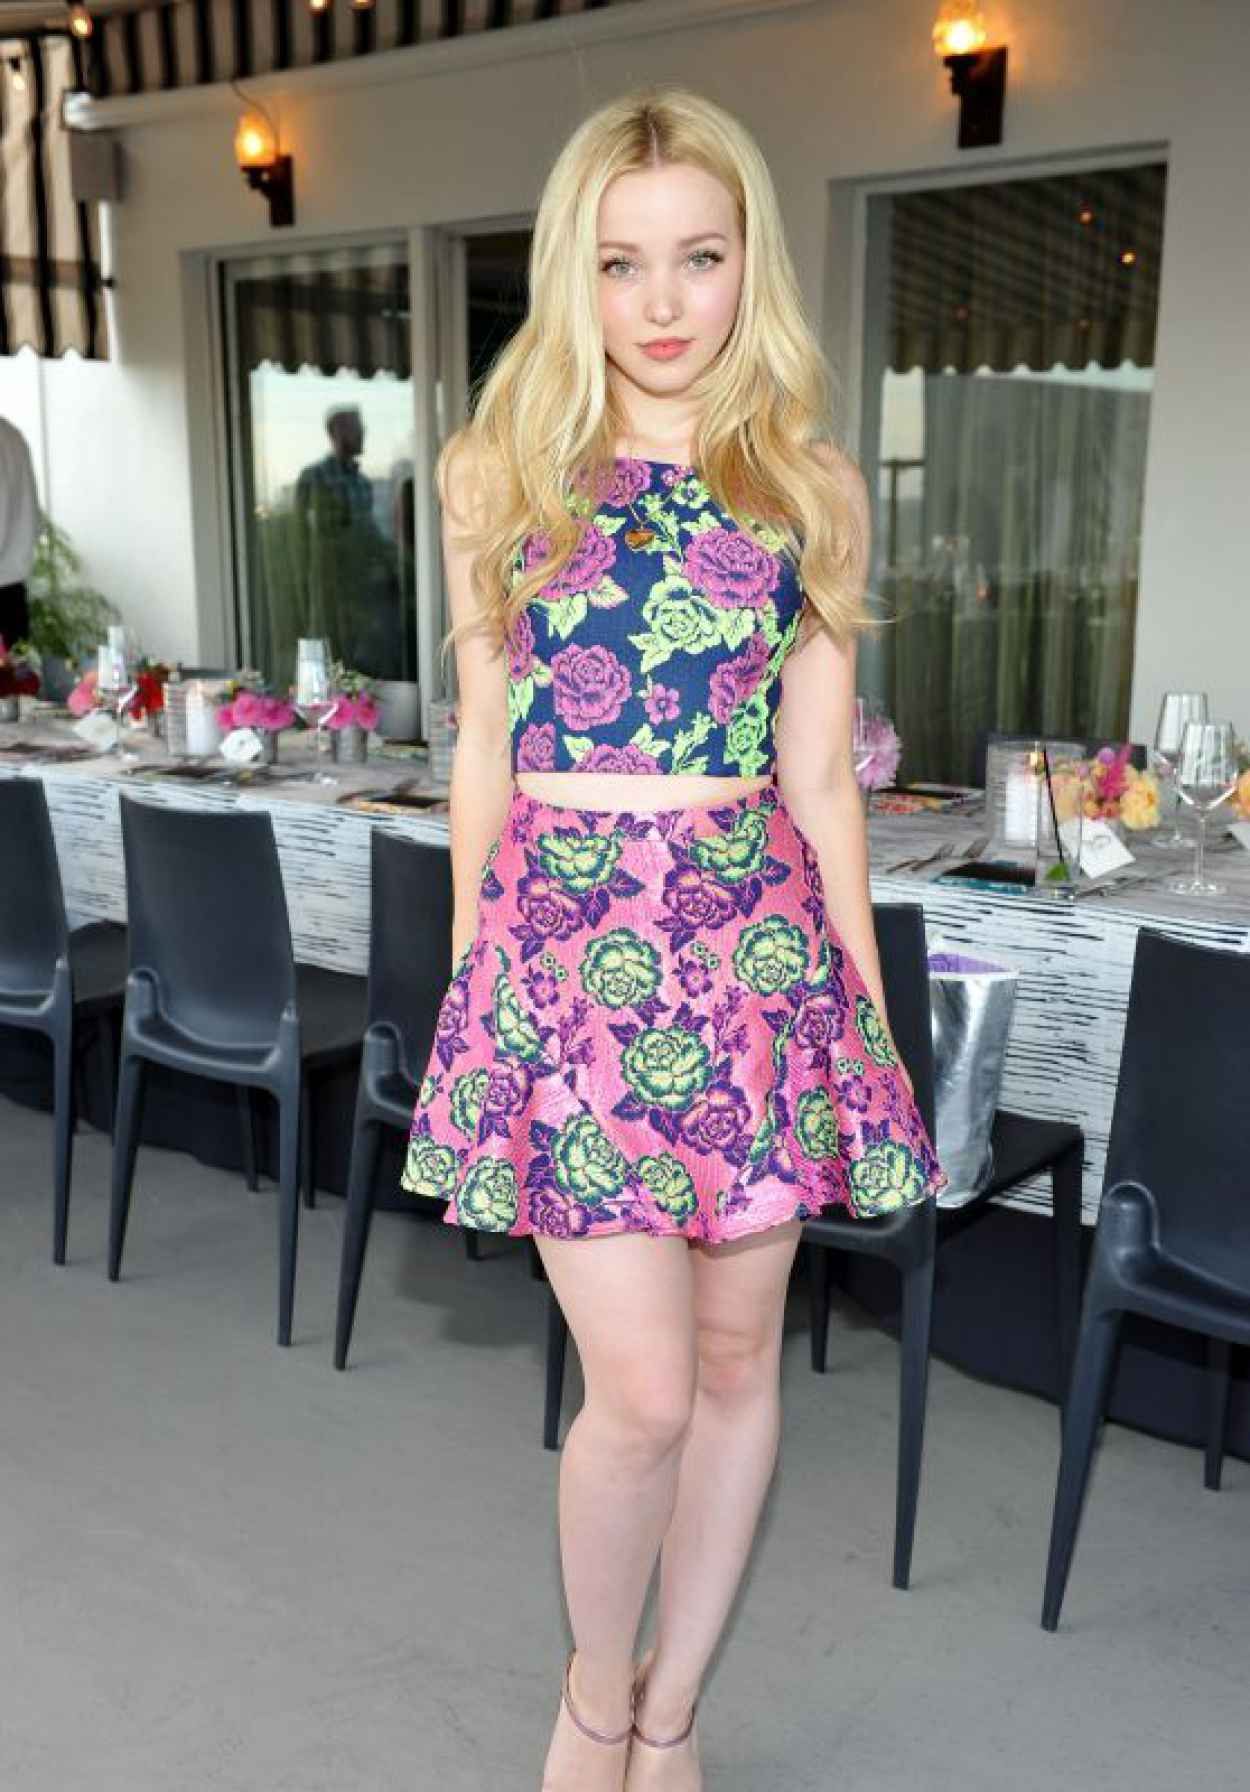 Dove Cameron - Teen Vogue Dinner Party in Los Angeles, August 2015-1